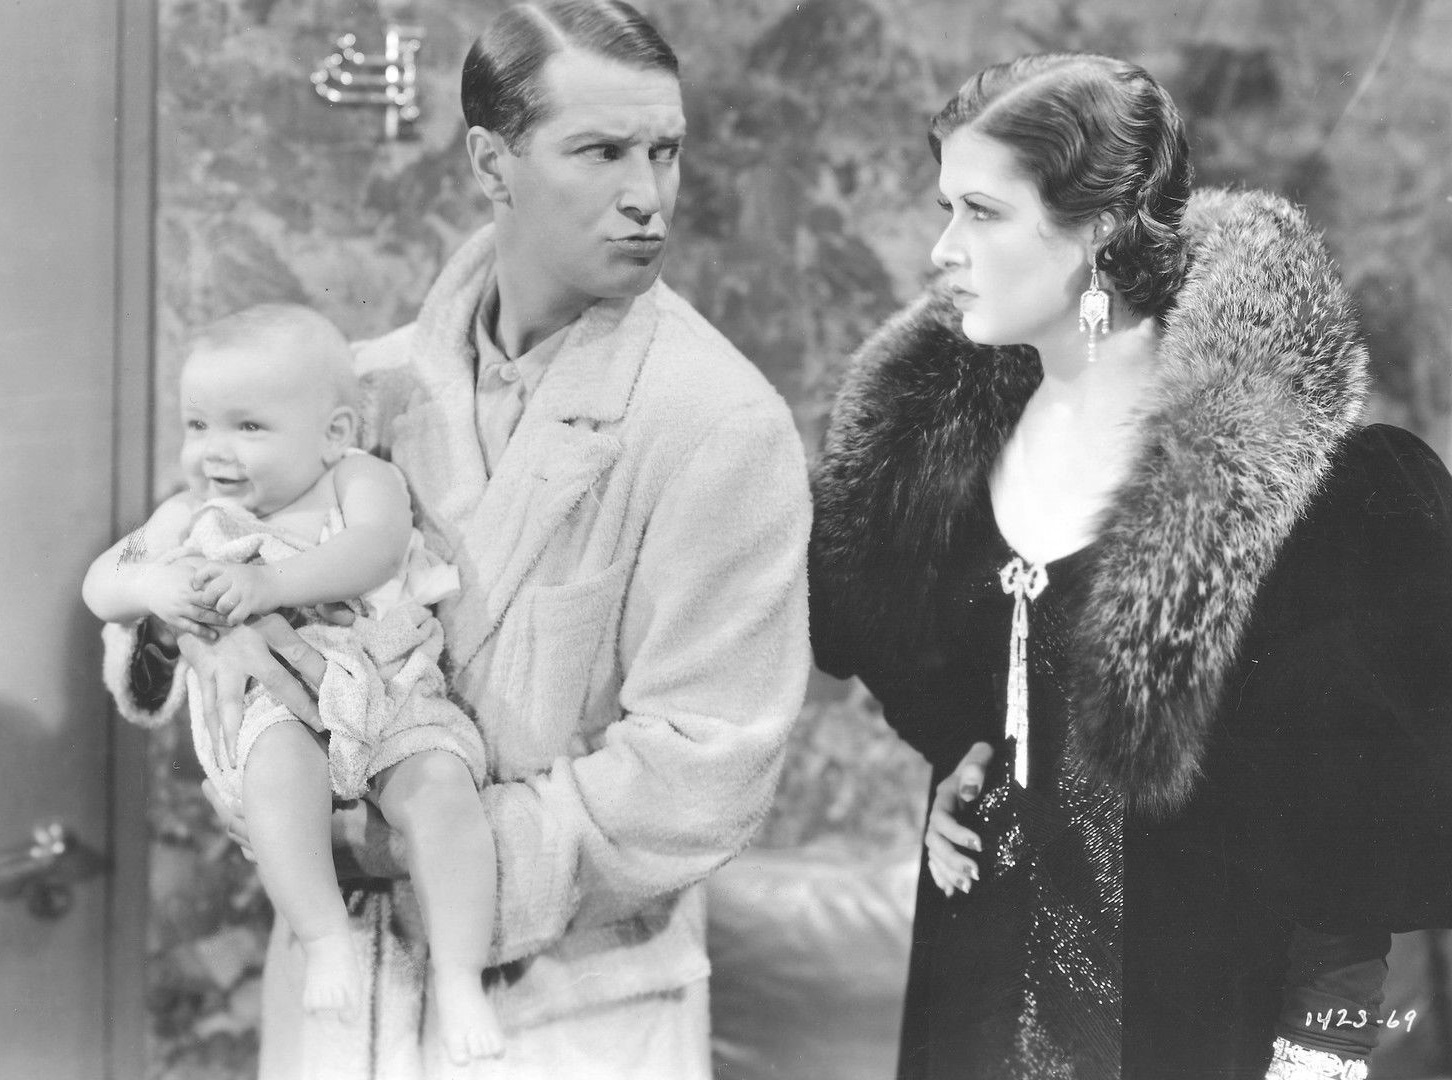 Maurice Chevalier, Baby LeRoy, and Leah Ray in A Bedtime Story (1933)